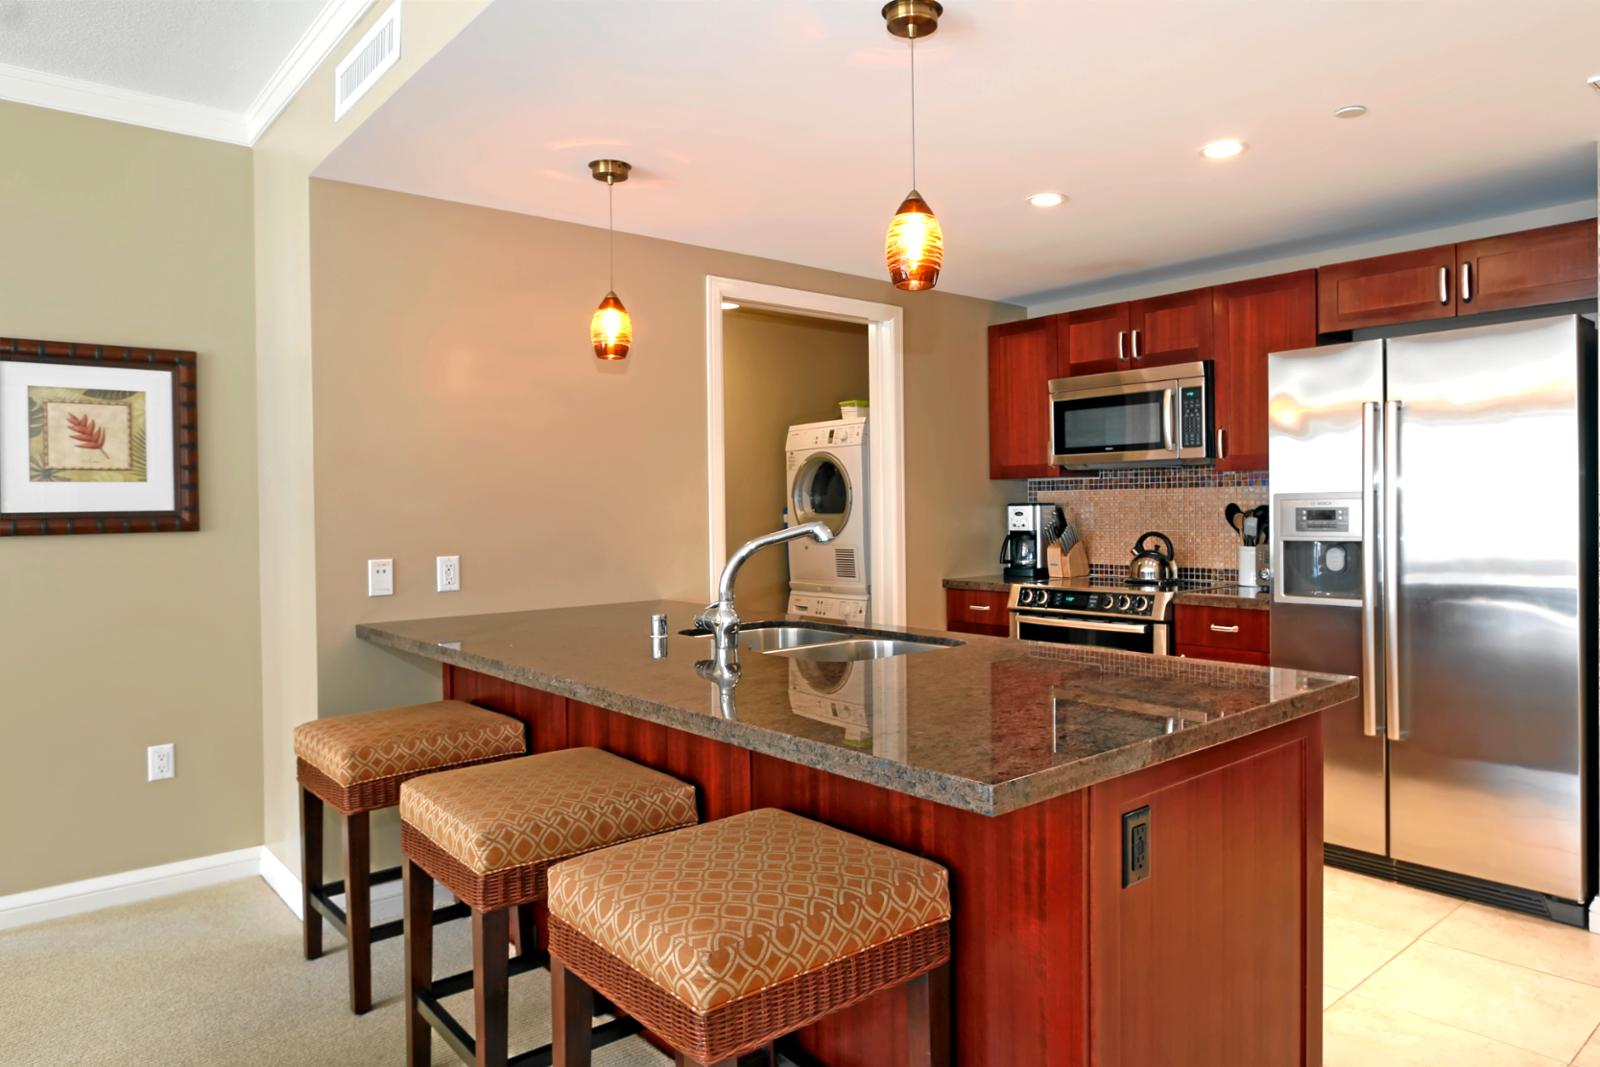 Large gourmet kitchen with full size Bosch appliances and small laundry room to the side.